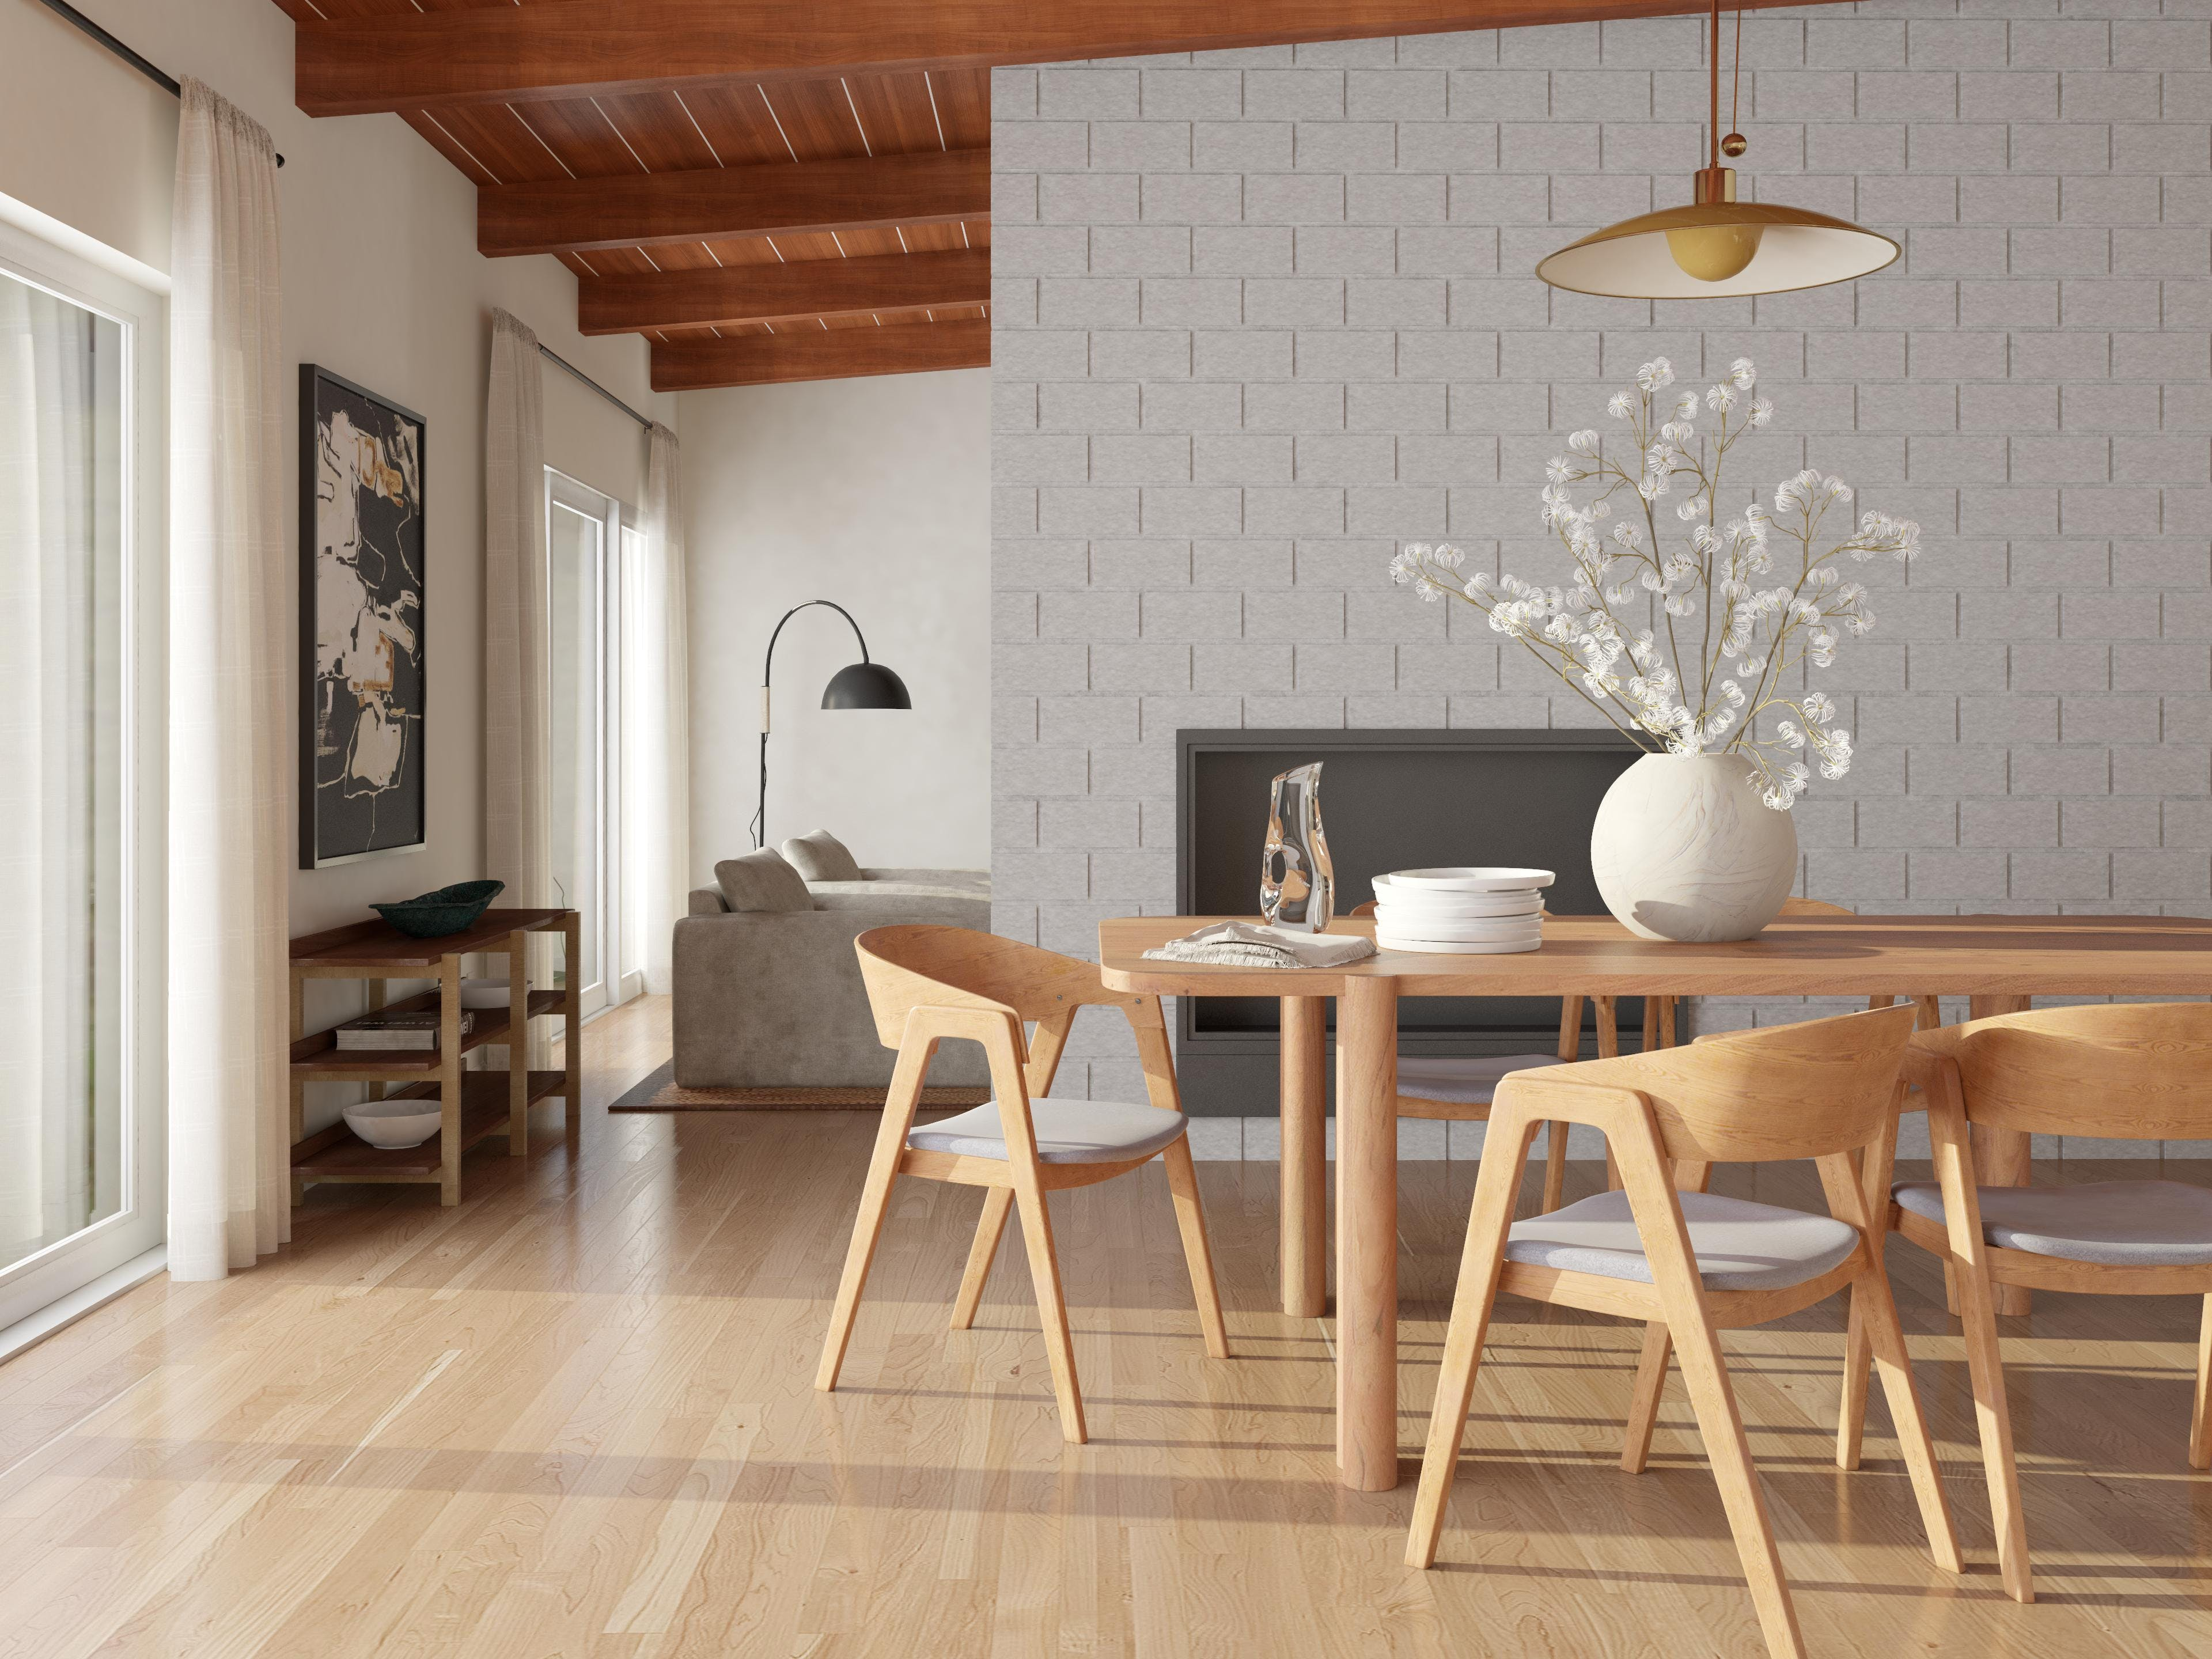 Cool, Calm And Collected Dining Room